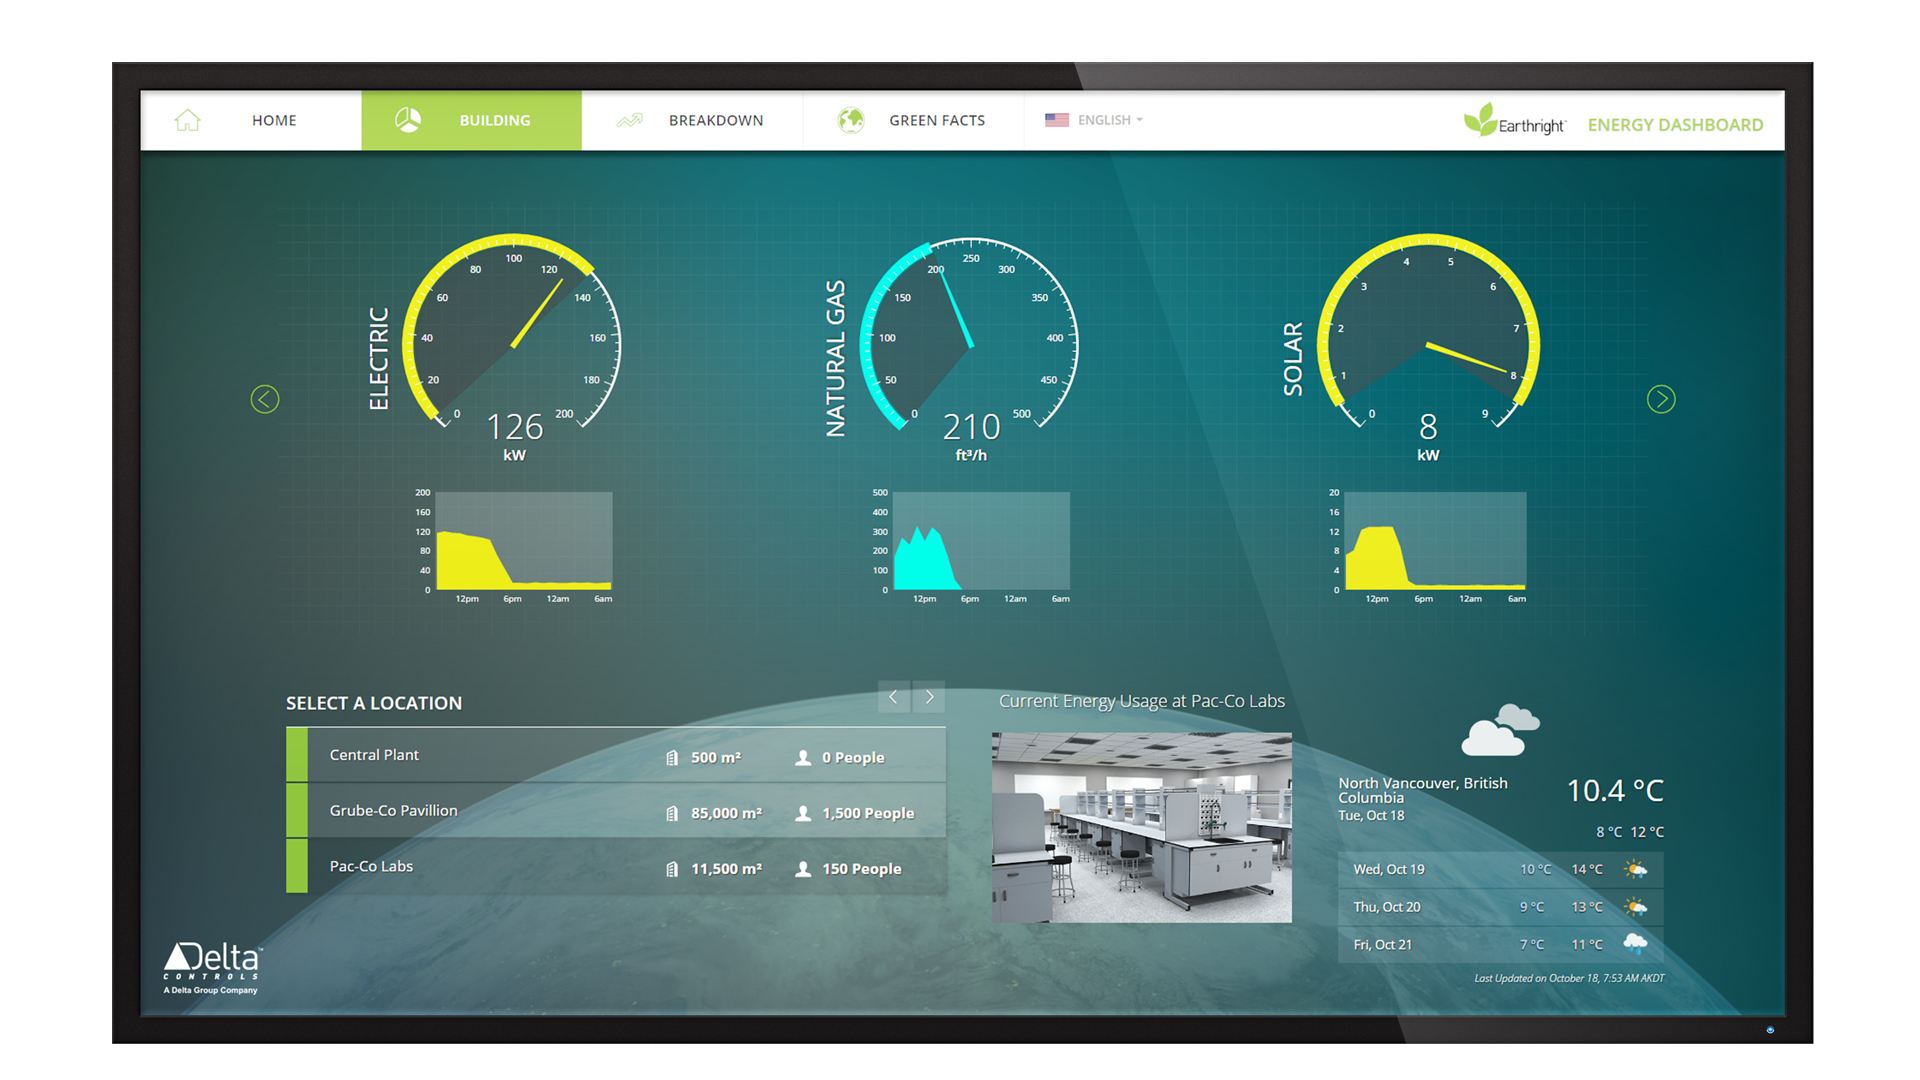 Earthright Dashboard